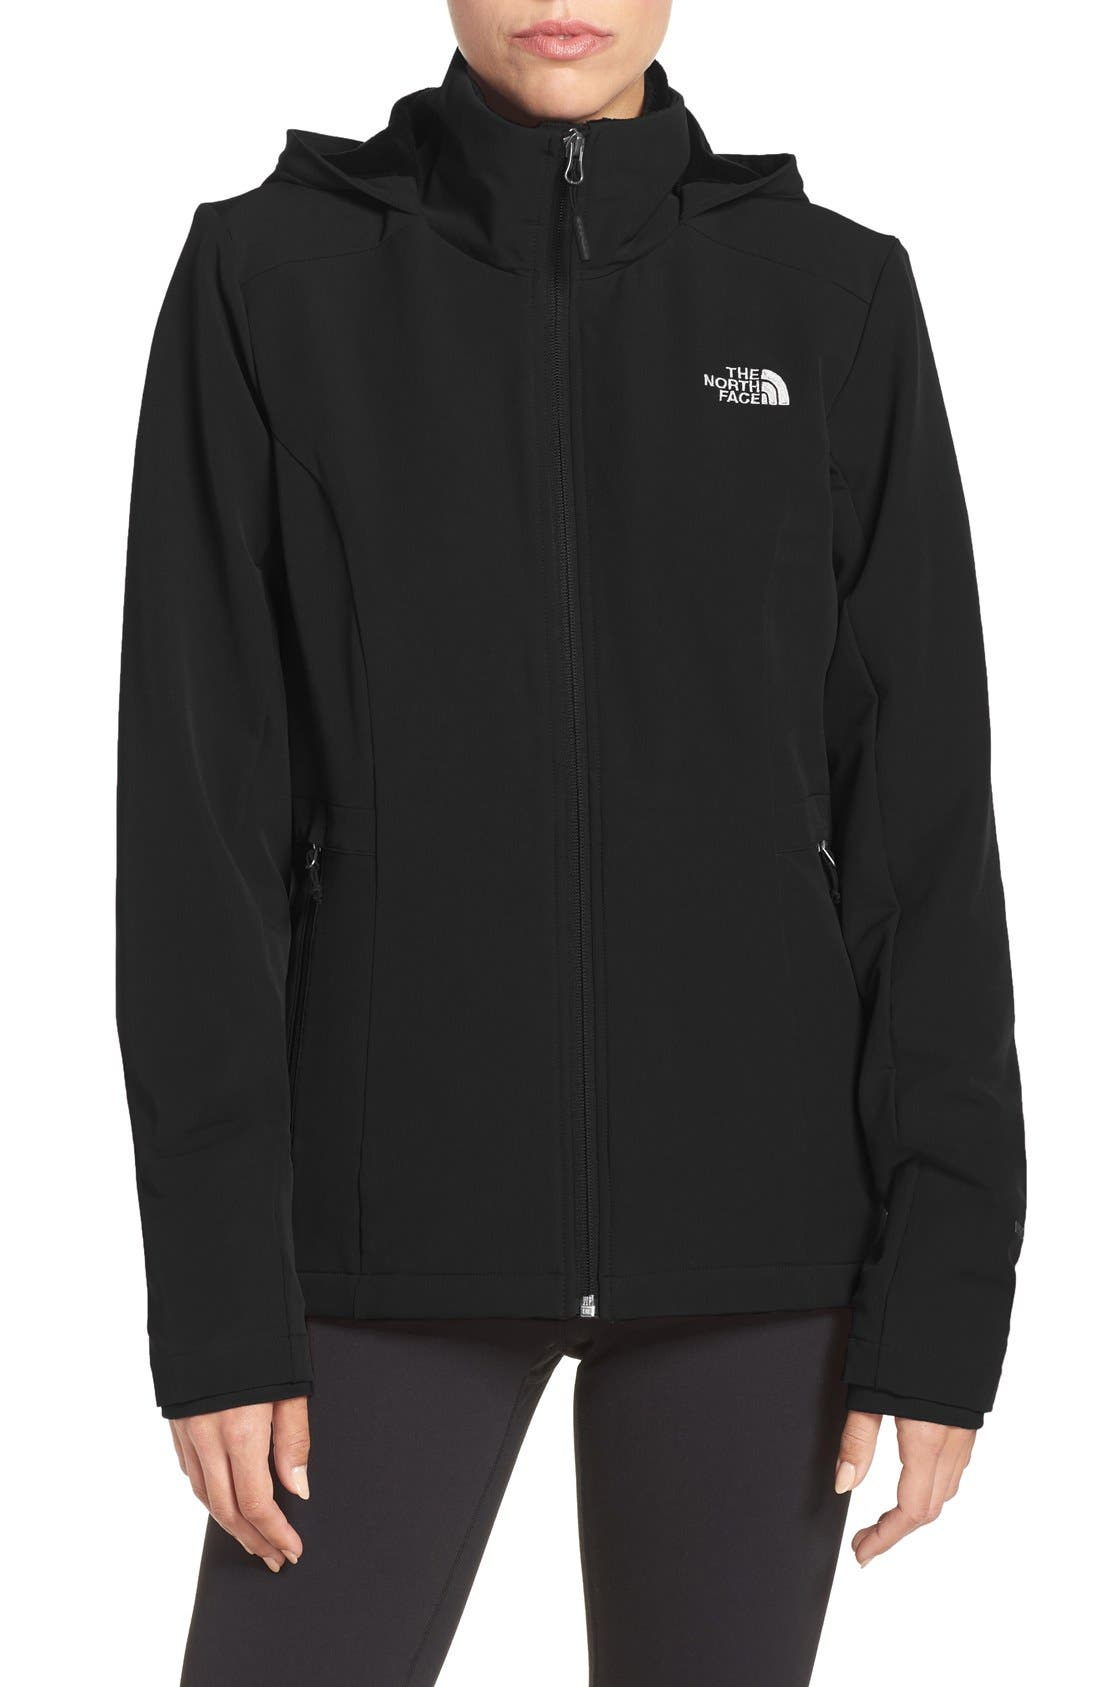 Plus size jackets north face